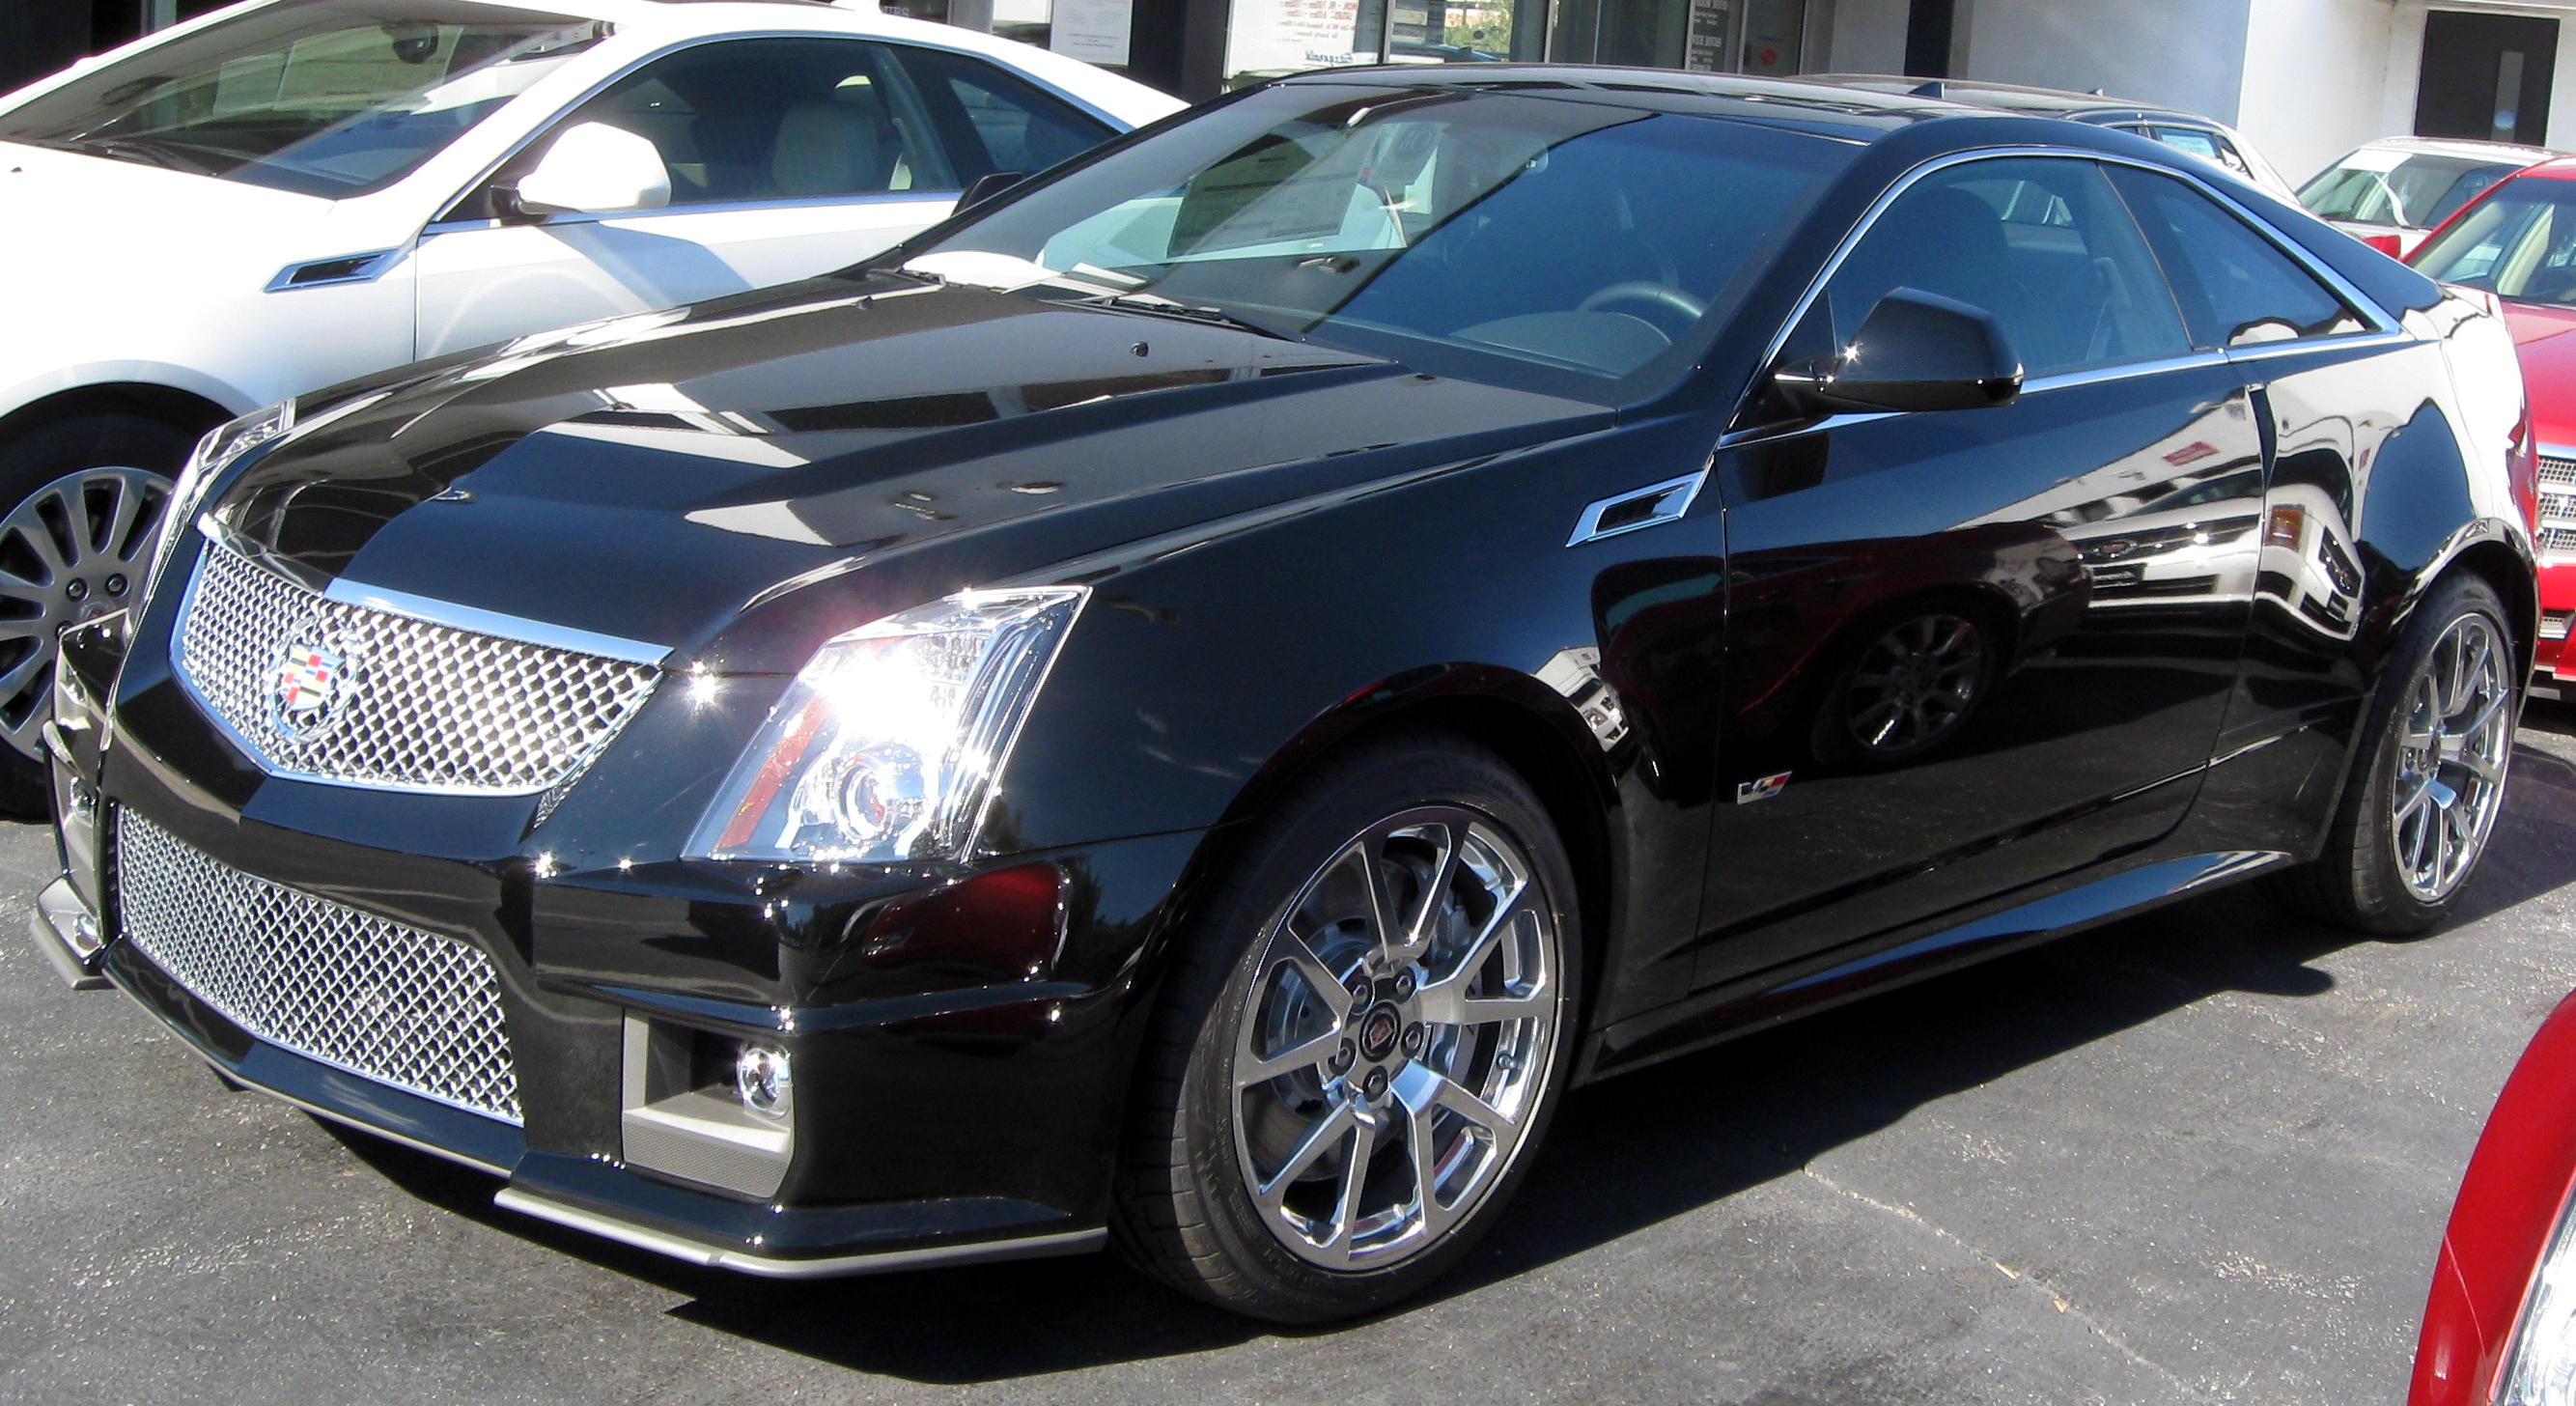 Cadillac Cts-v Coupe #2